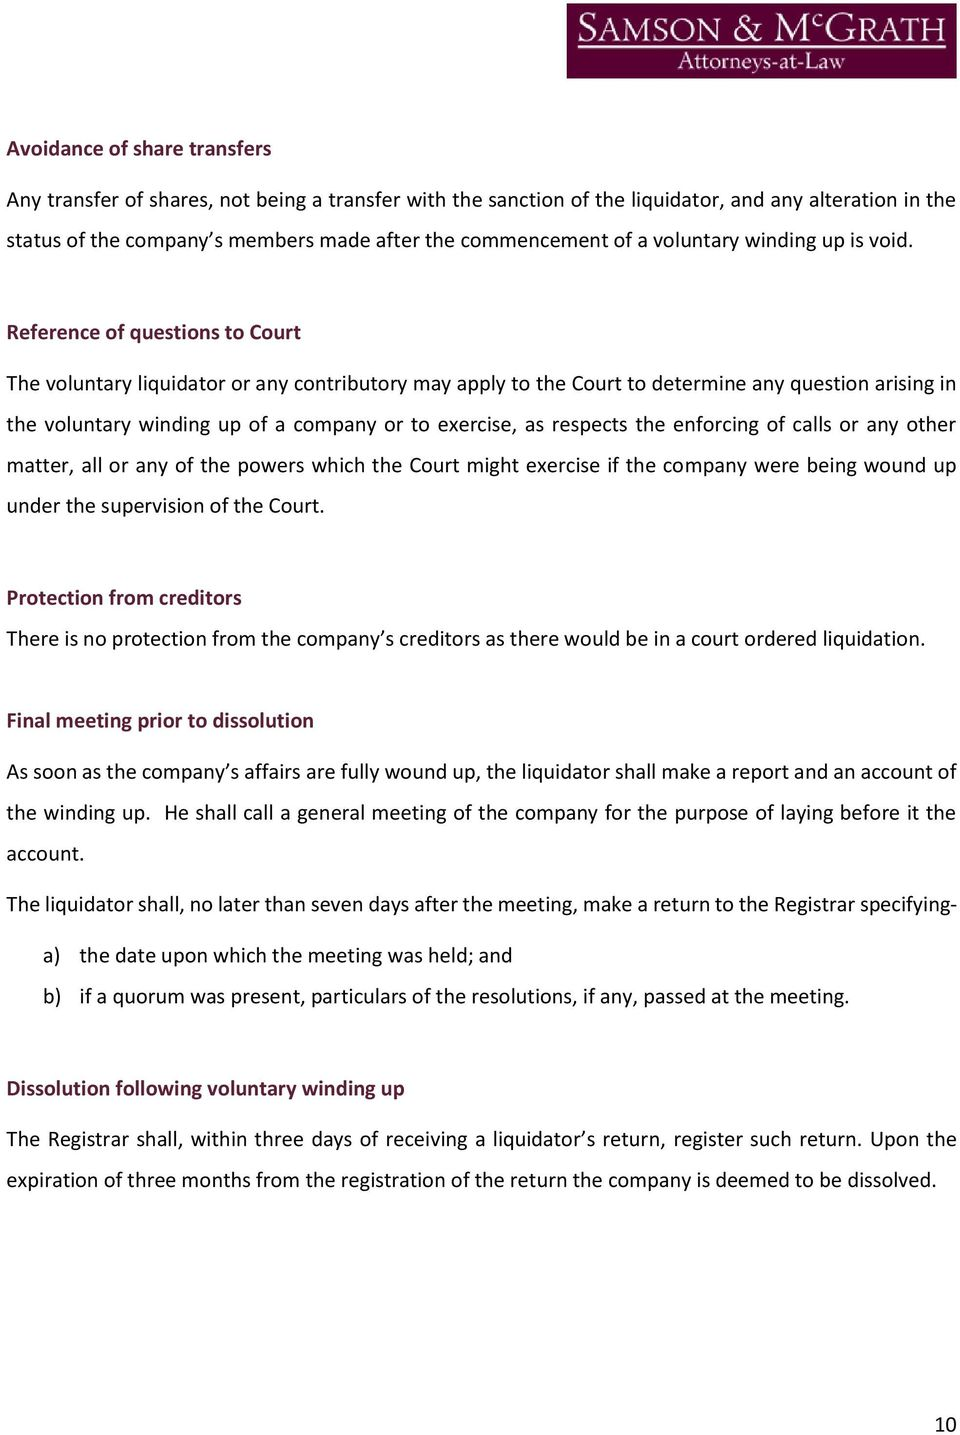 Reference of questions to Court The voluntary liquidator or any contributory may apply to the Court to determine any question arising in the voluntary winding up of a company or to exercise, as